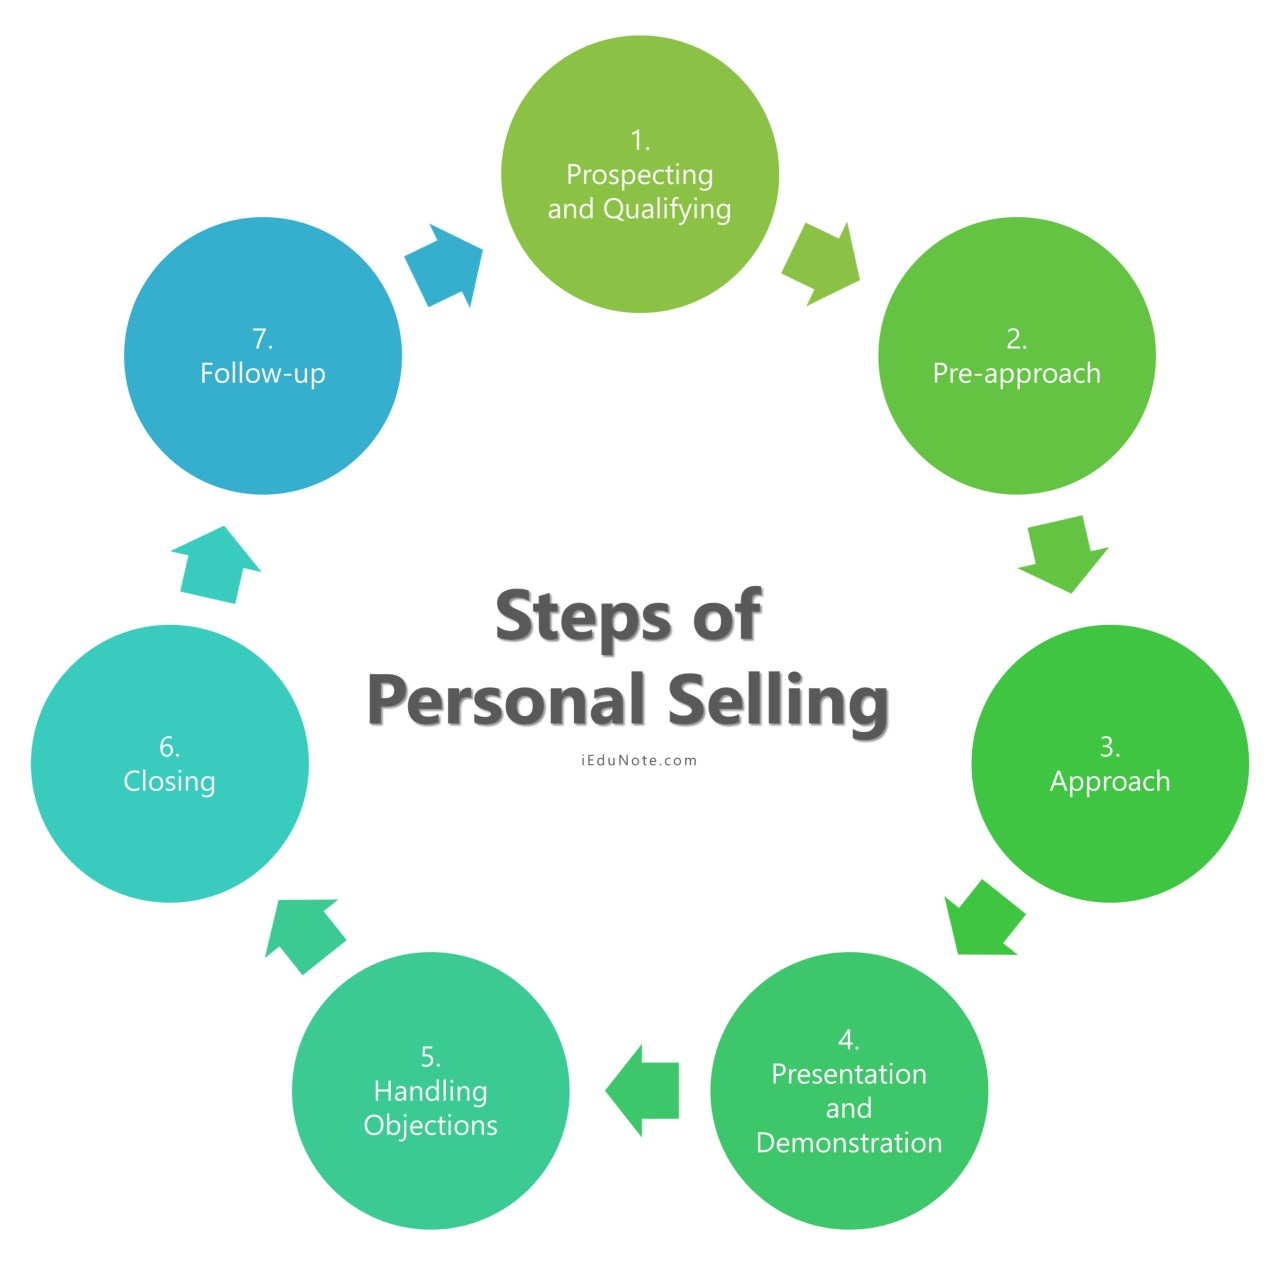 Steps of Personal Selling